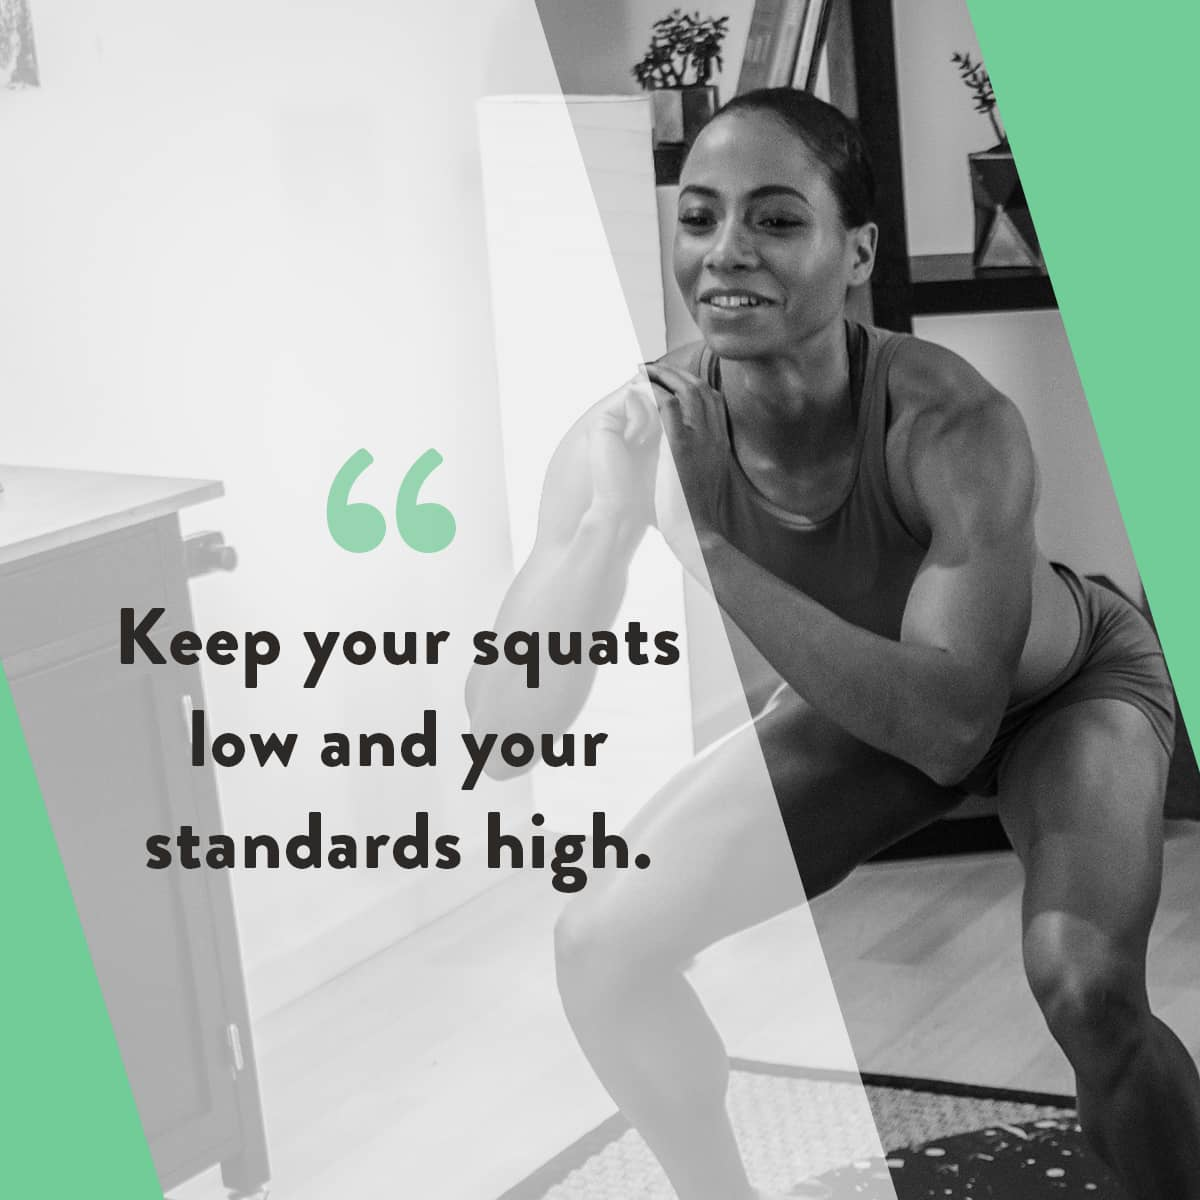 Fitness inspiration quote from Crossrope